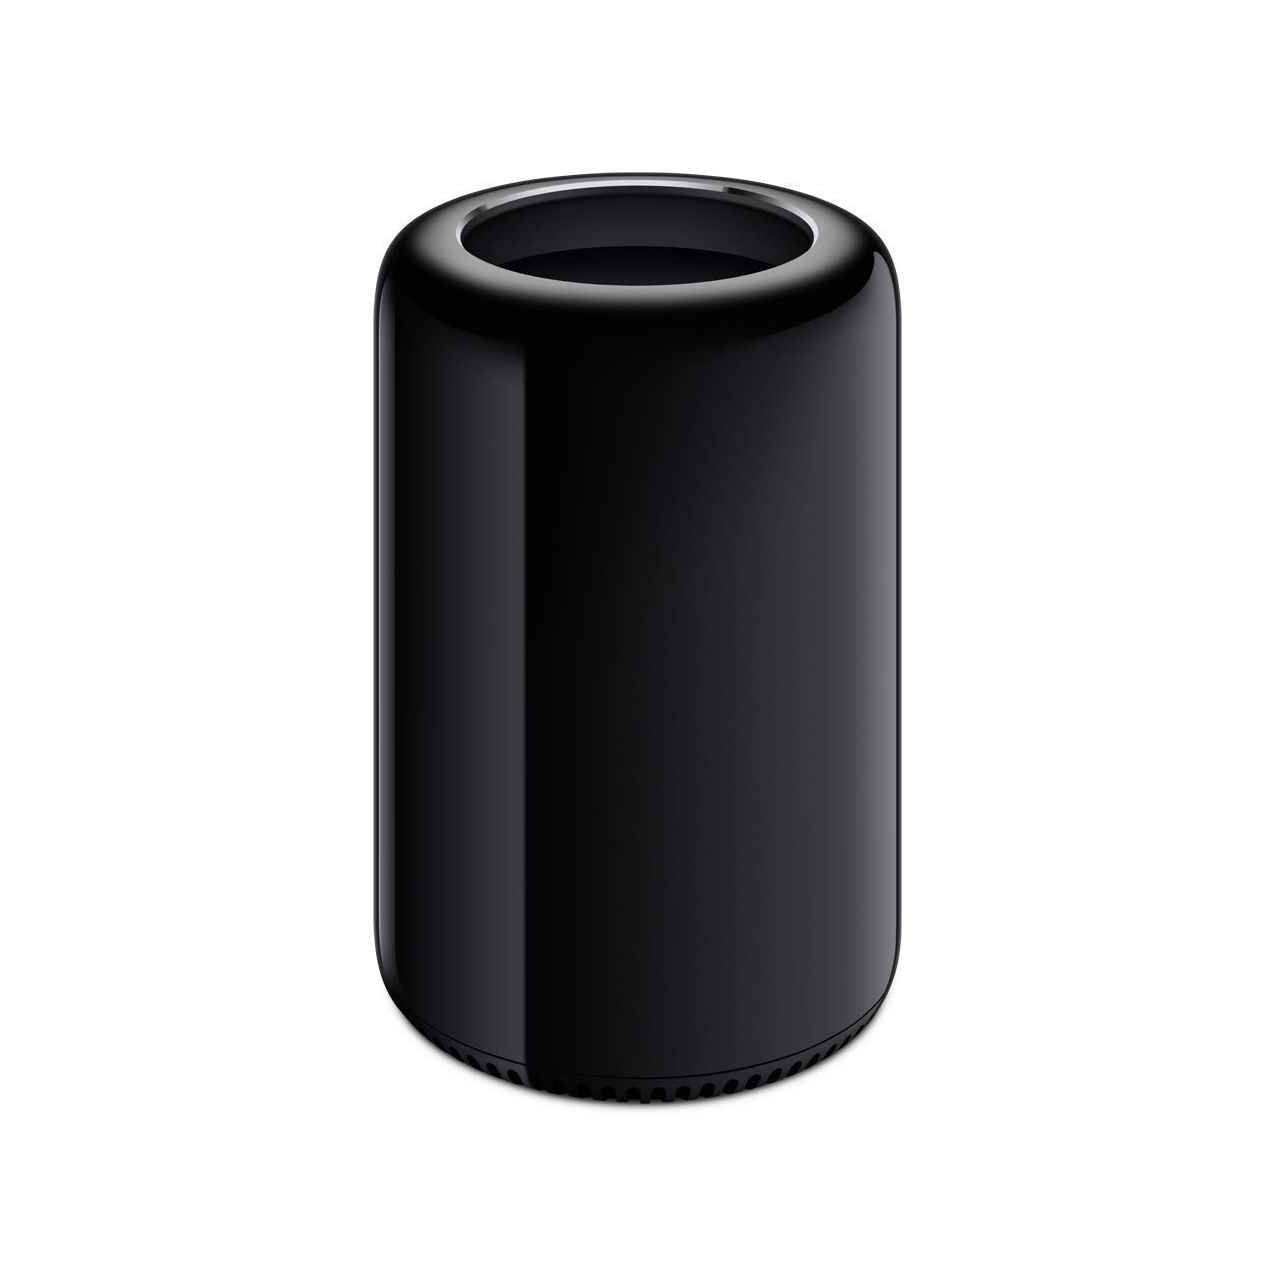 Apple Mac Pro - Processore Intel Xeon E5 8‑Core a 3.0Ghz